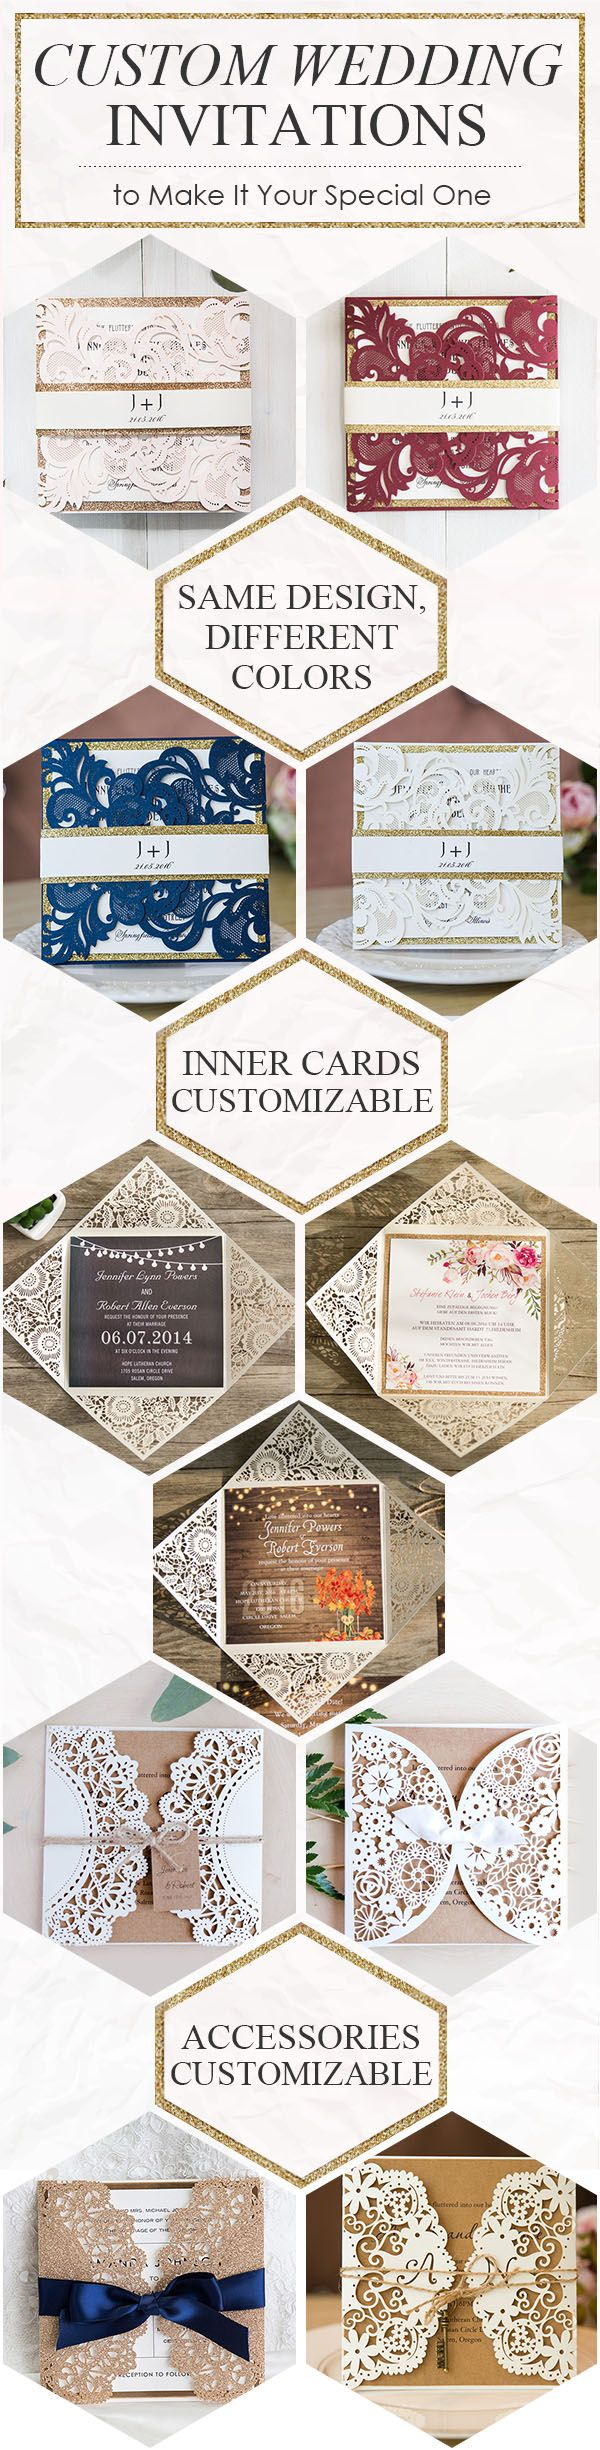 inexpensive rustic laser cut wedding invitation with